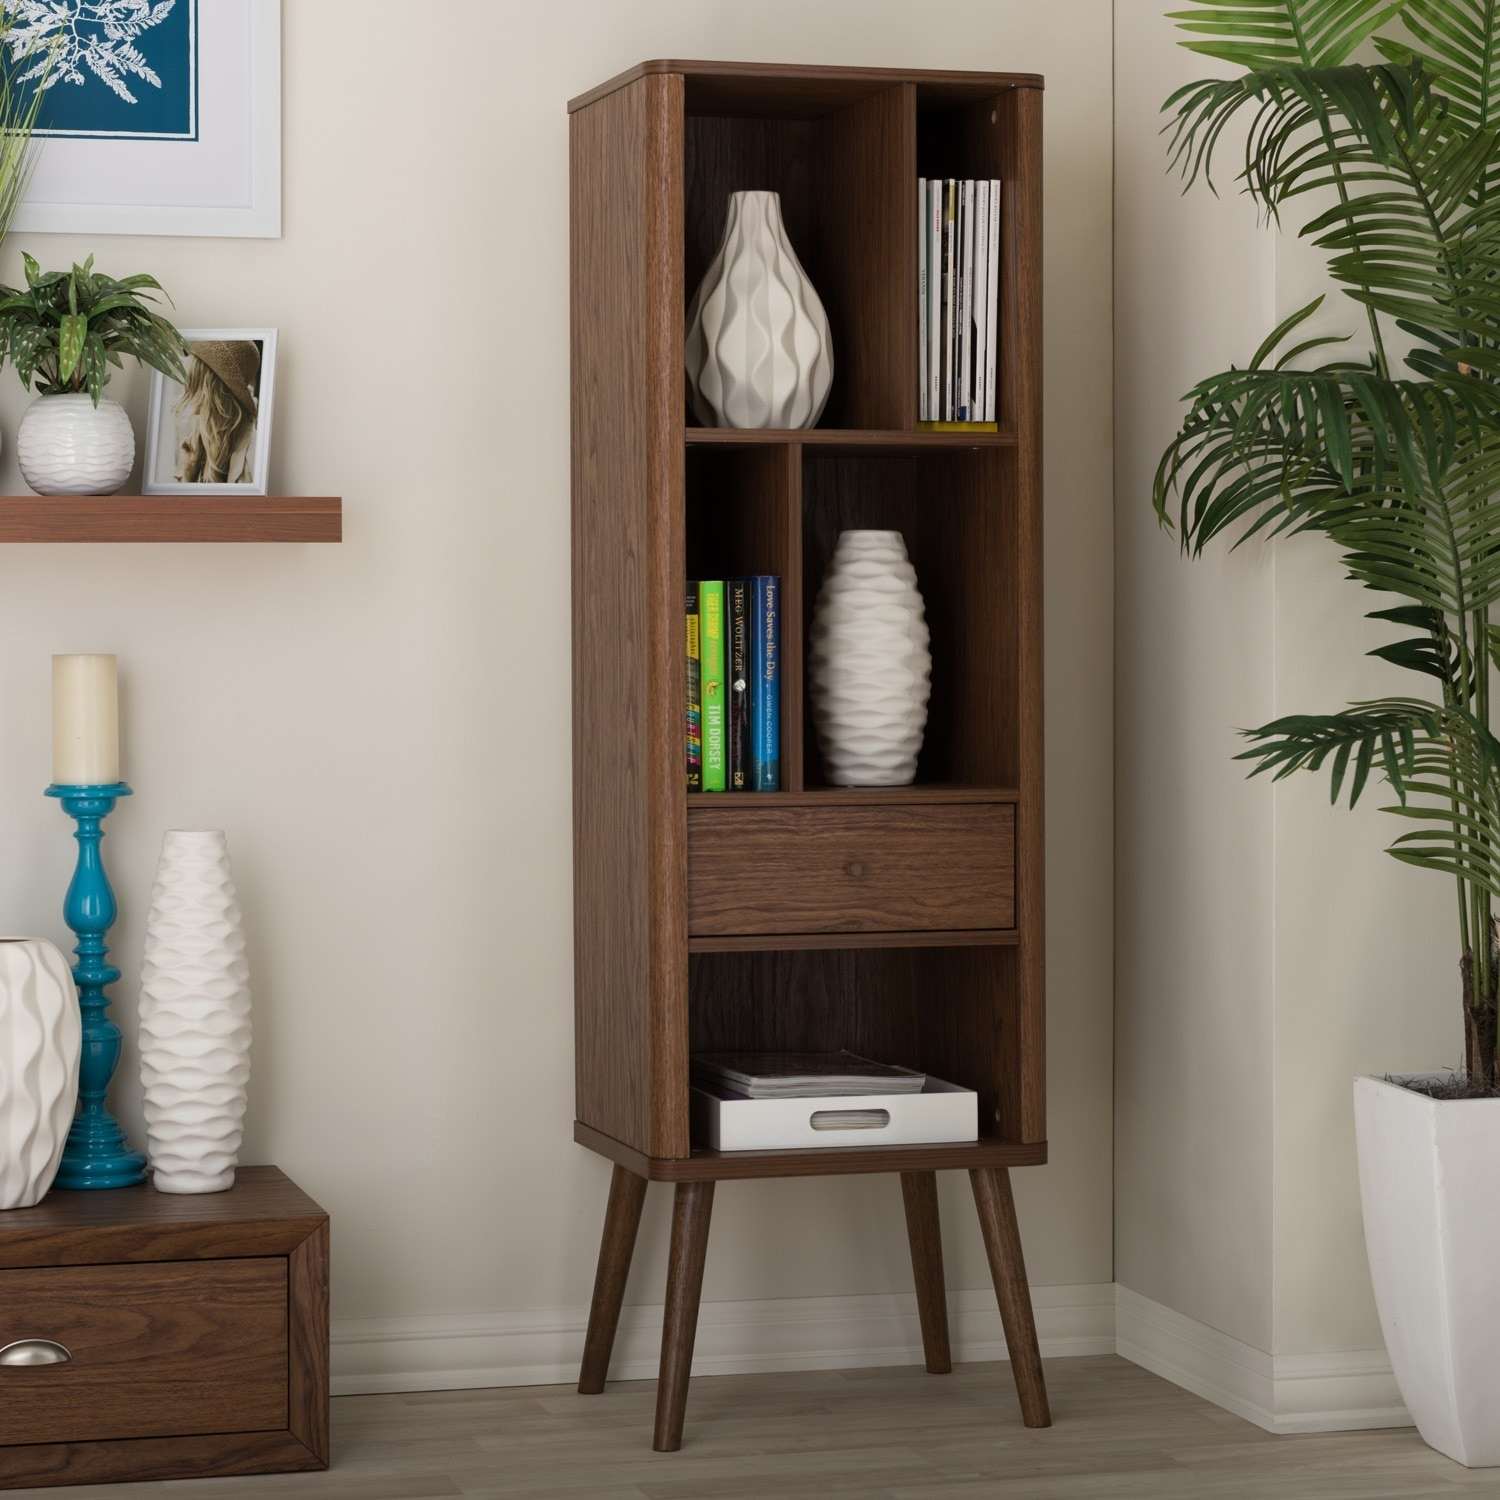 blackdogcabinetry bookcase by made bookcasecabinet com cabinet blackdog custom cabinetry custommade